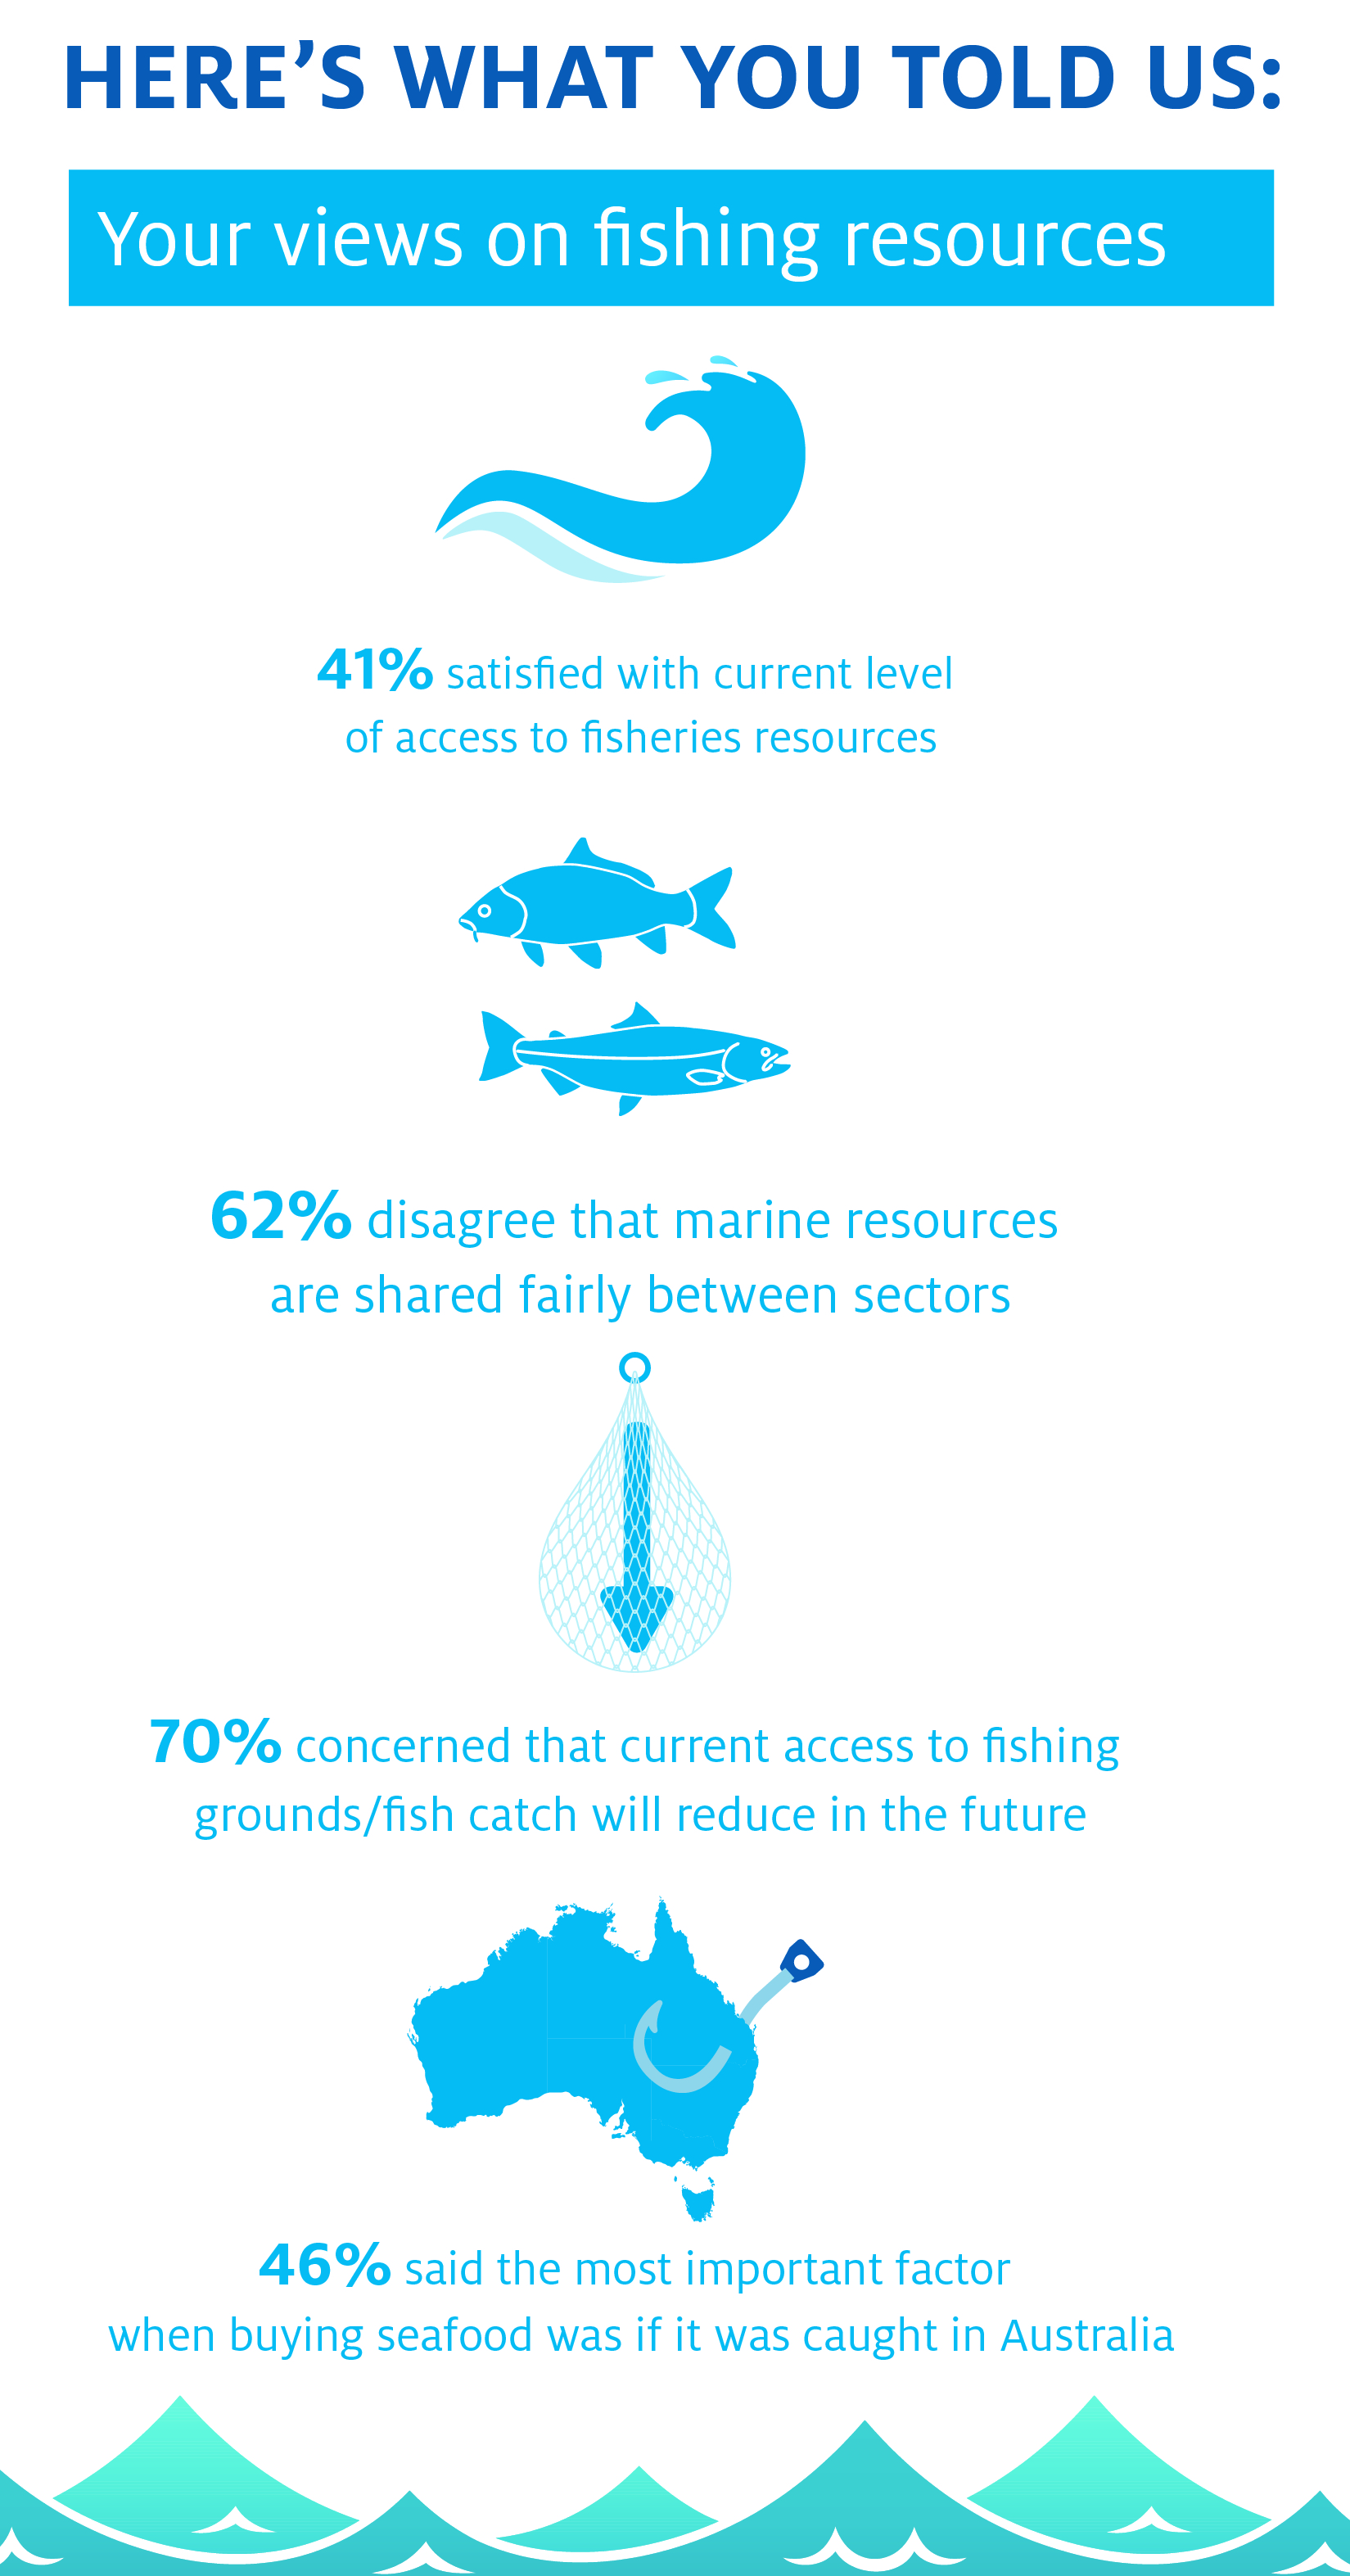 Here's what you told us: Your views on fishing resources, 41% satisfied with current level of access to fisheries resources, 62% disagree that marine resources are shared fairly between sectors, 70% concerned that current access to fishing grounds/fish catch will reduce in the future, 46% said the most important factor when buying seafood was if it was caught in Australia.